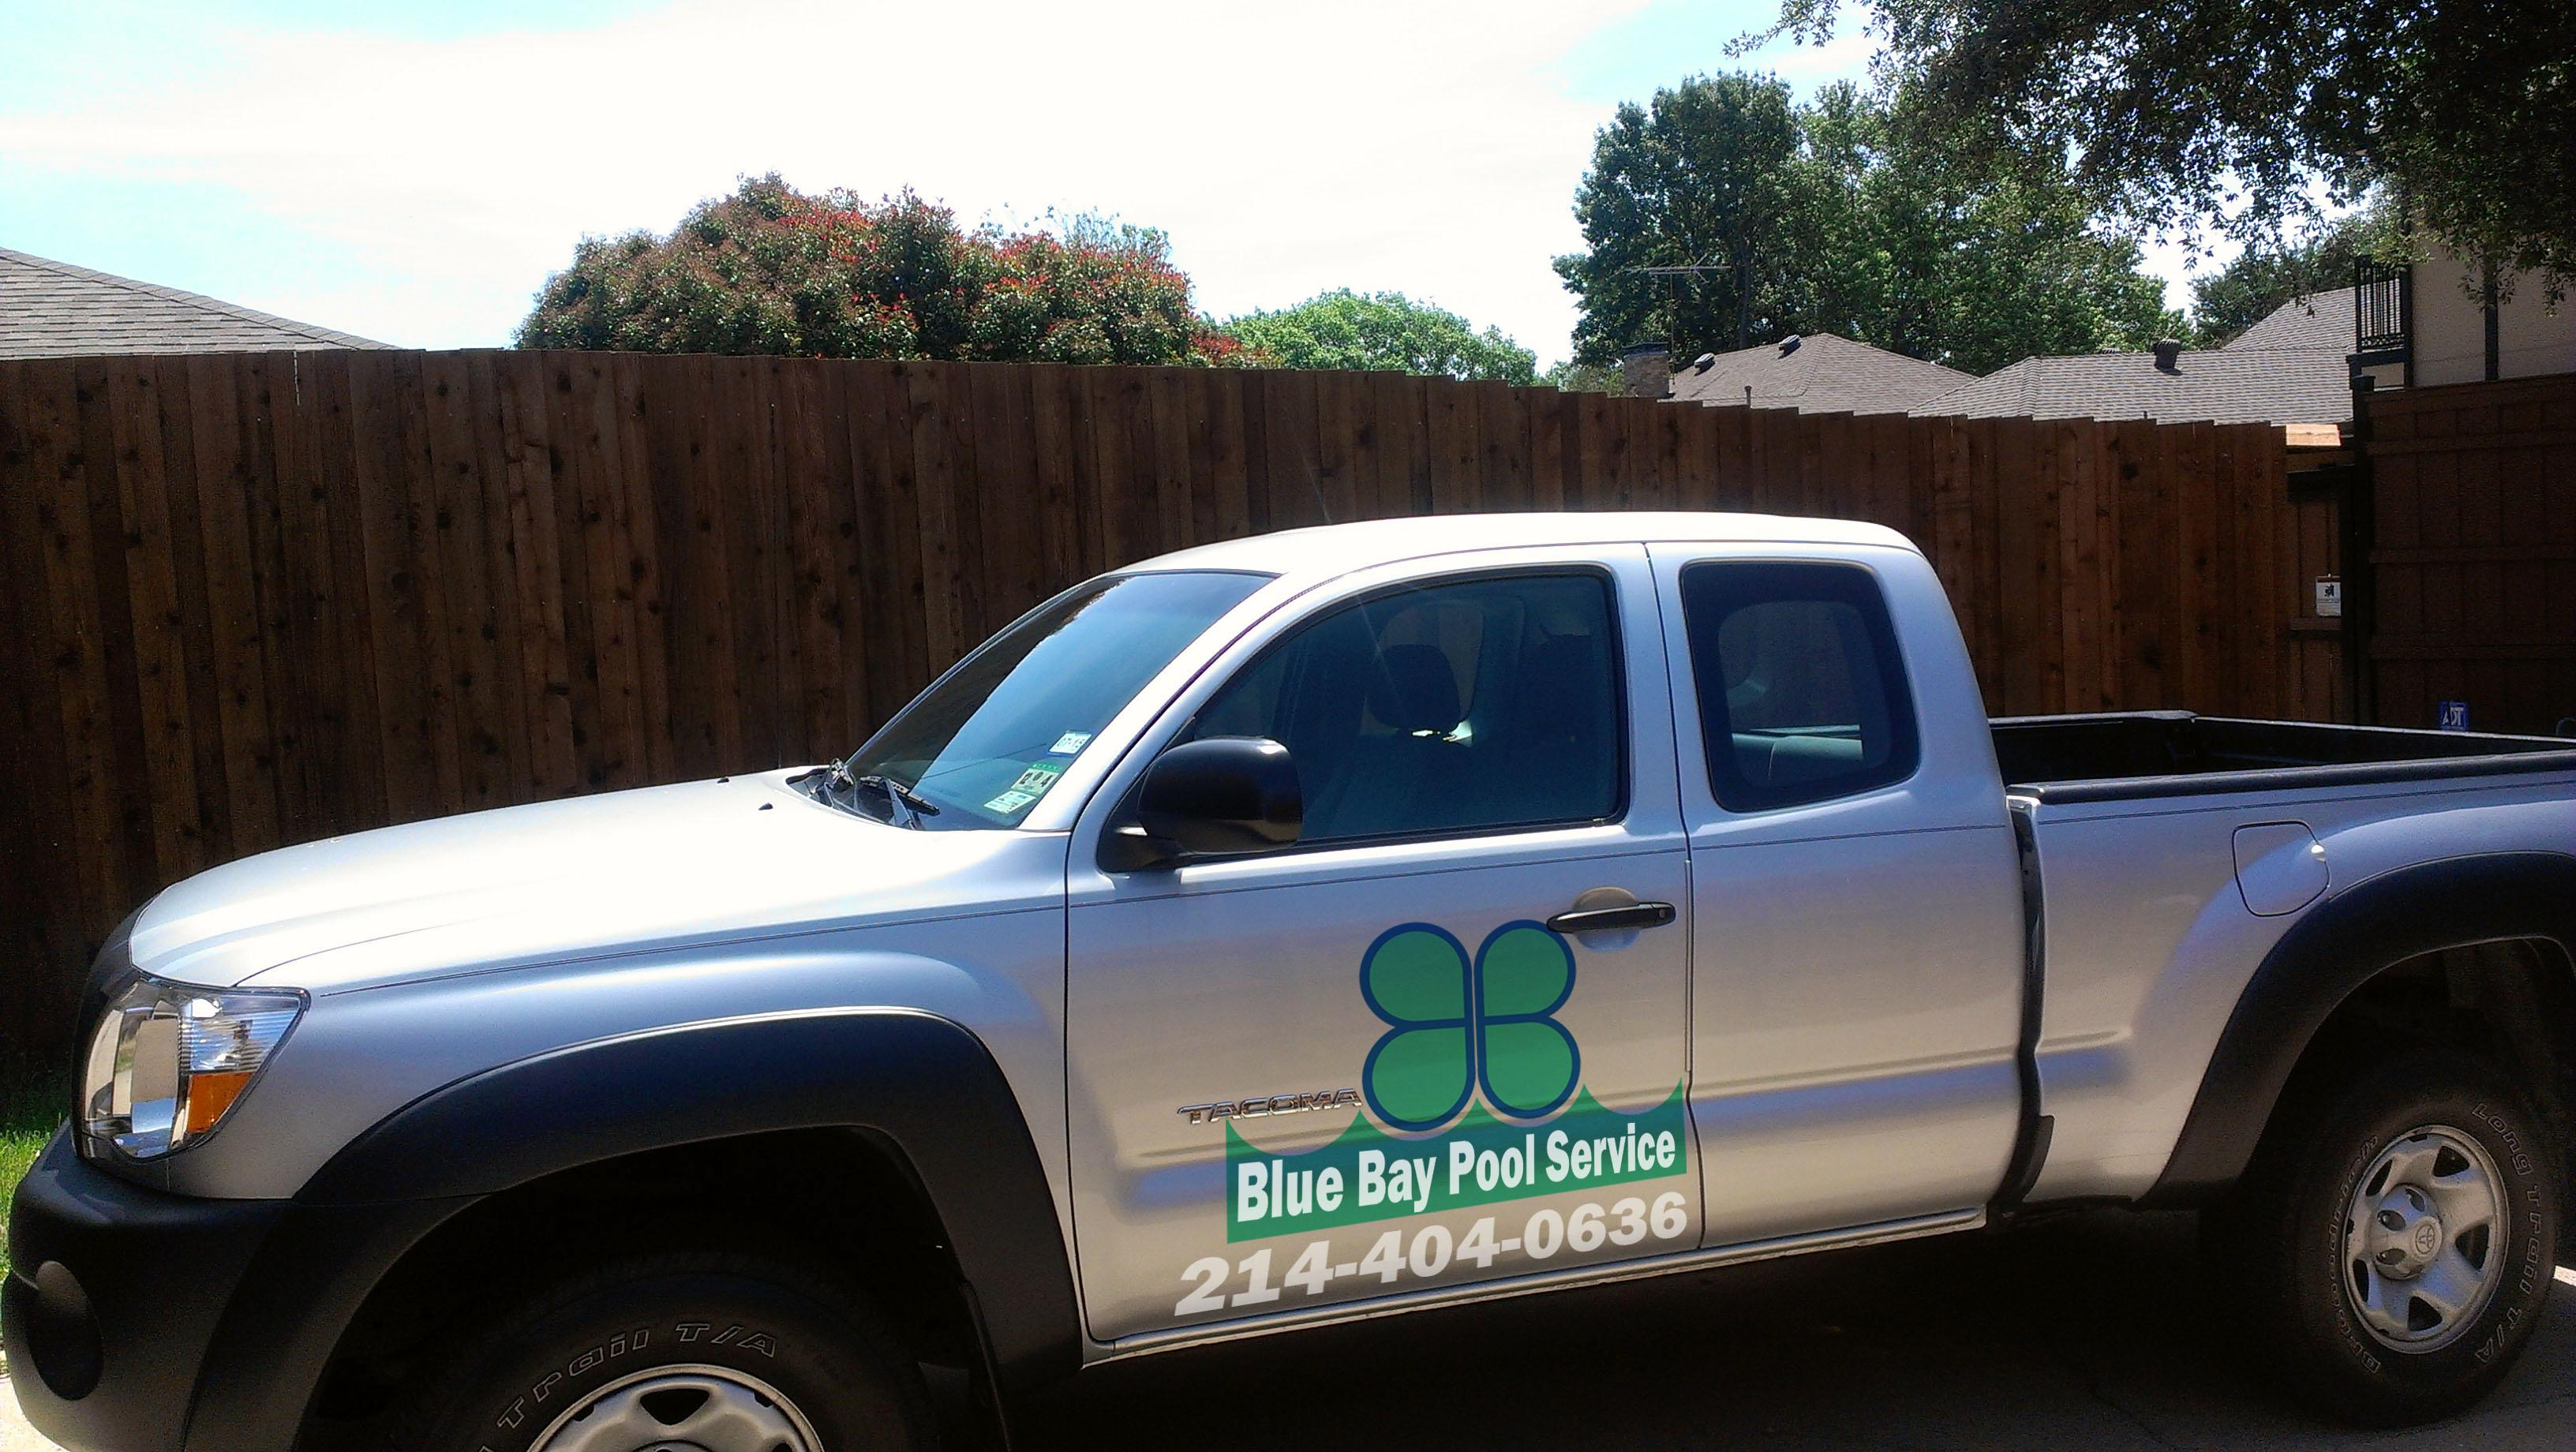 Blue Bay Pool Service - ad image